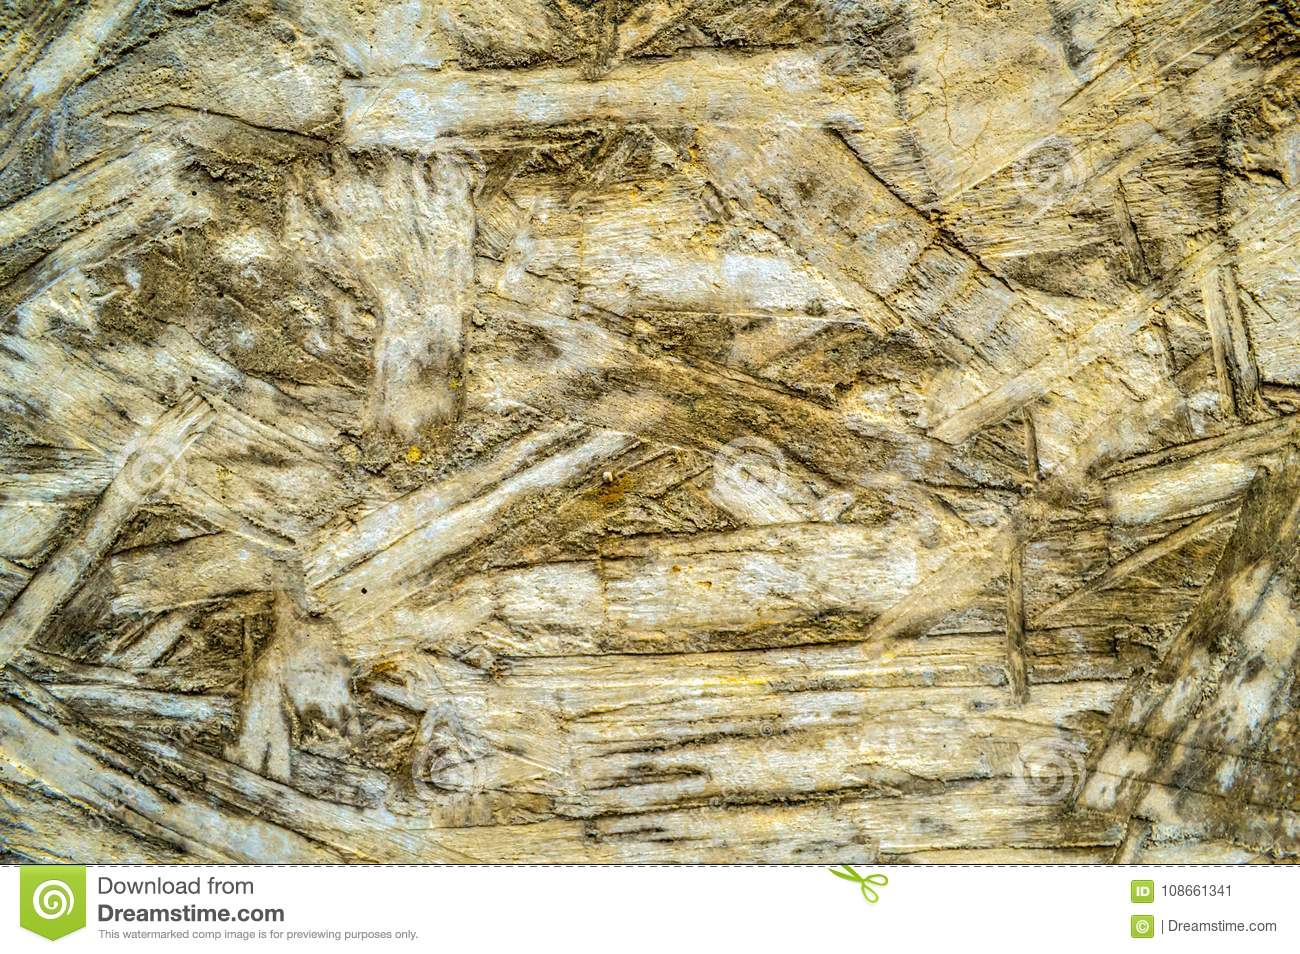 Board Formed Concrete Texture Stock Image - Image of formed, finish ...